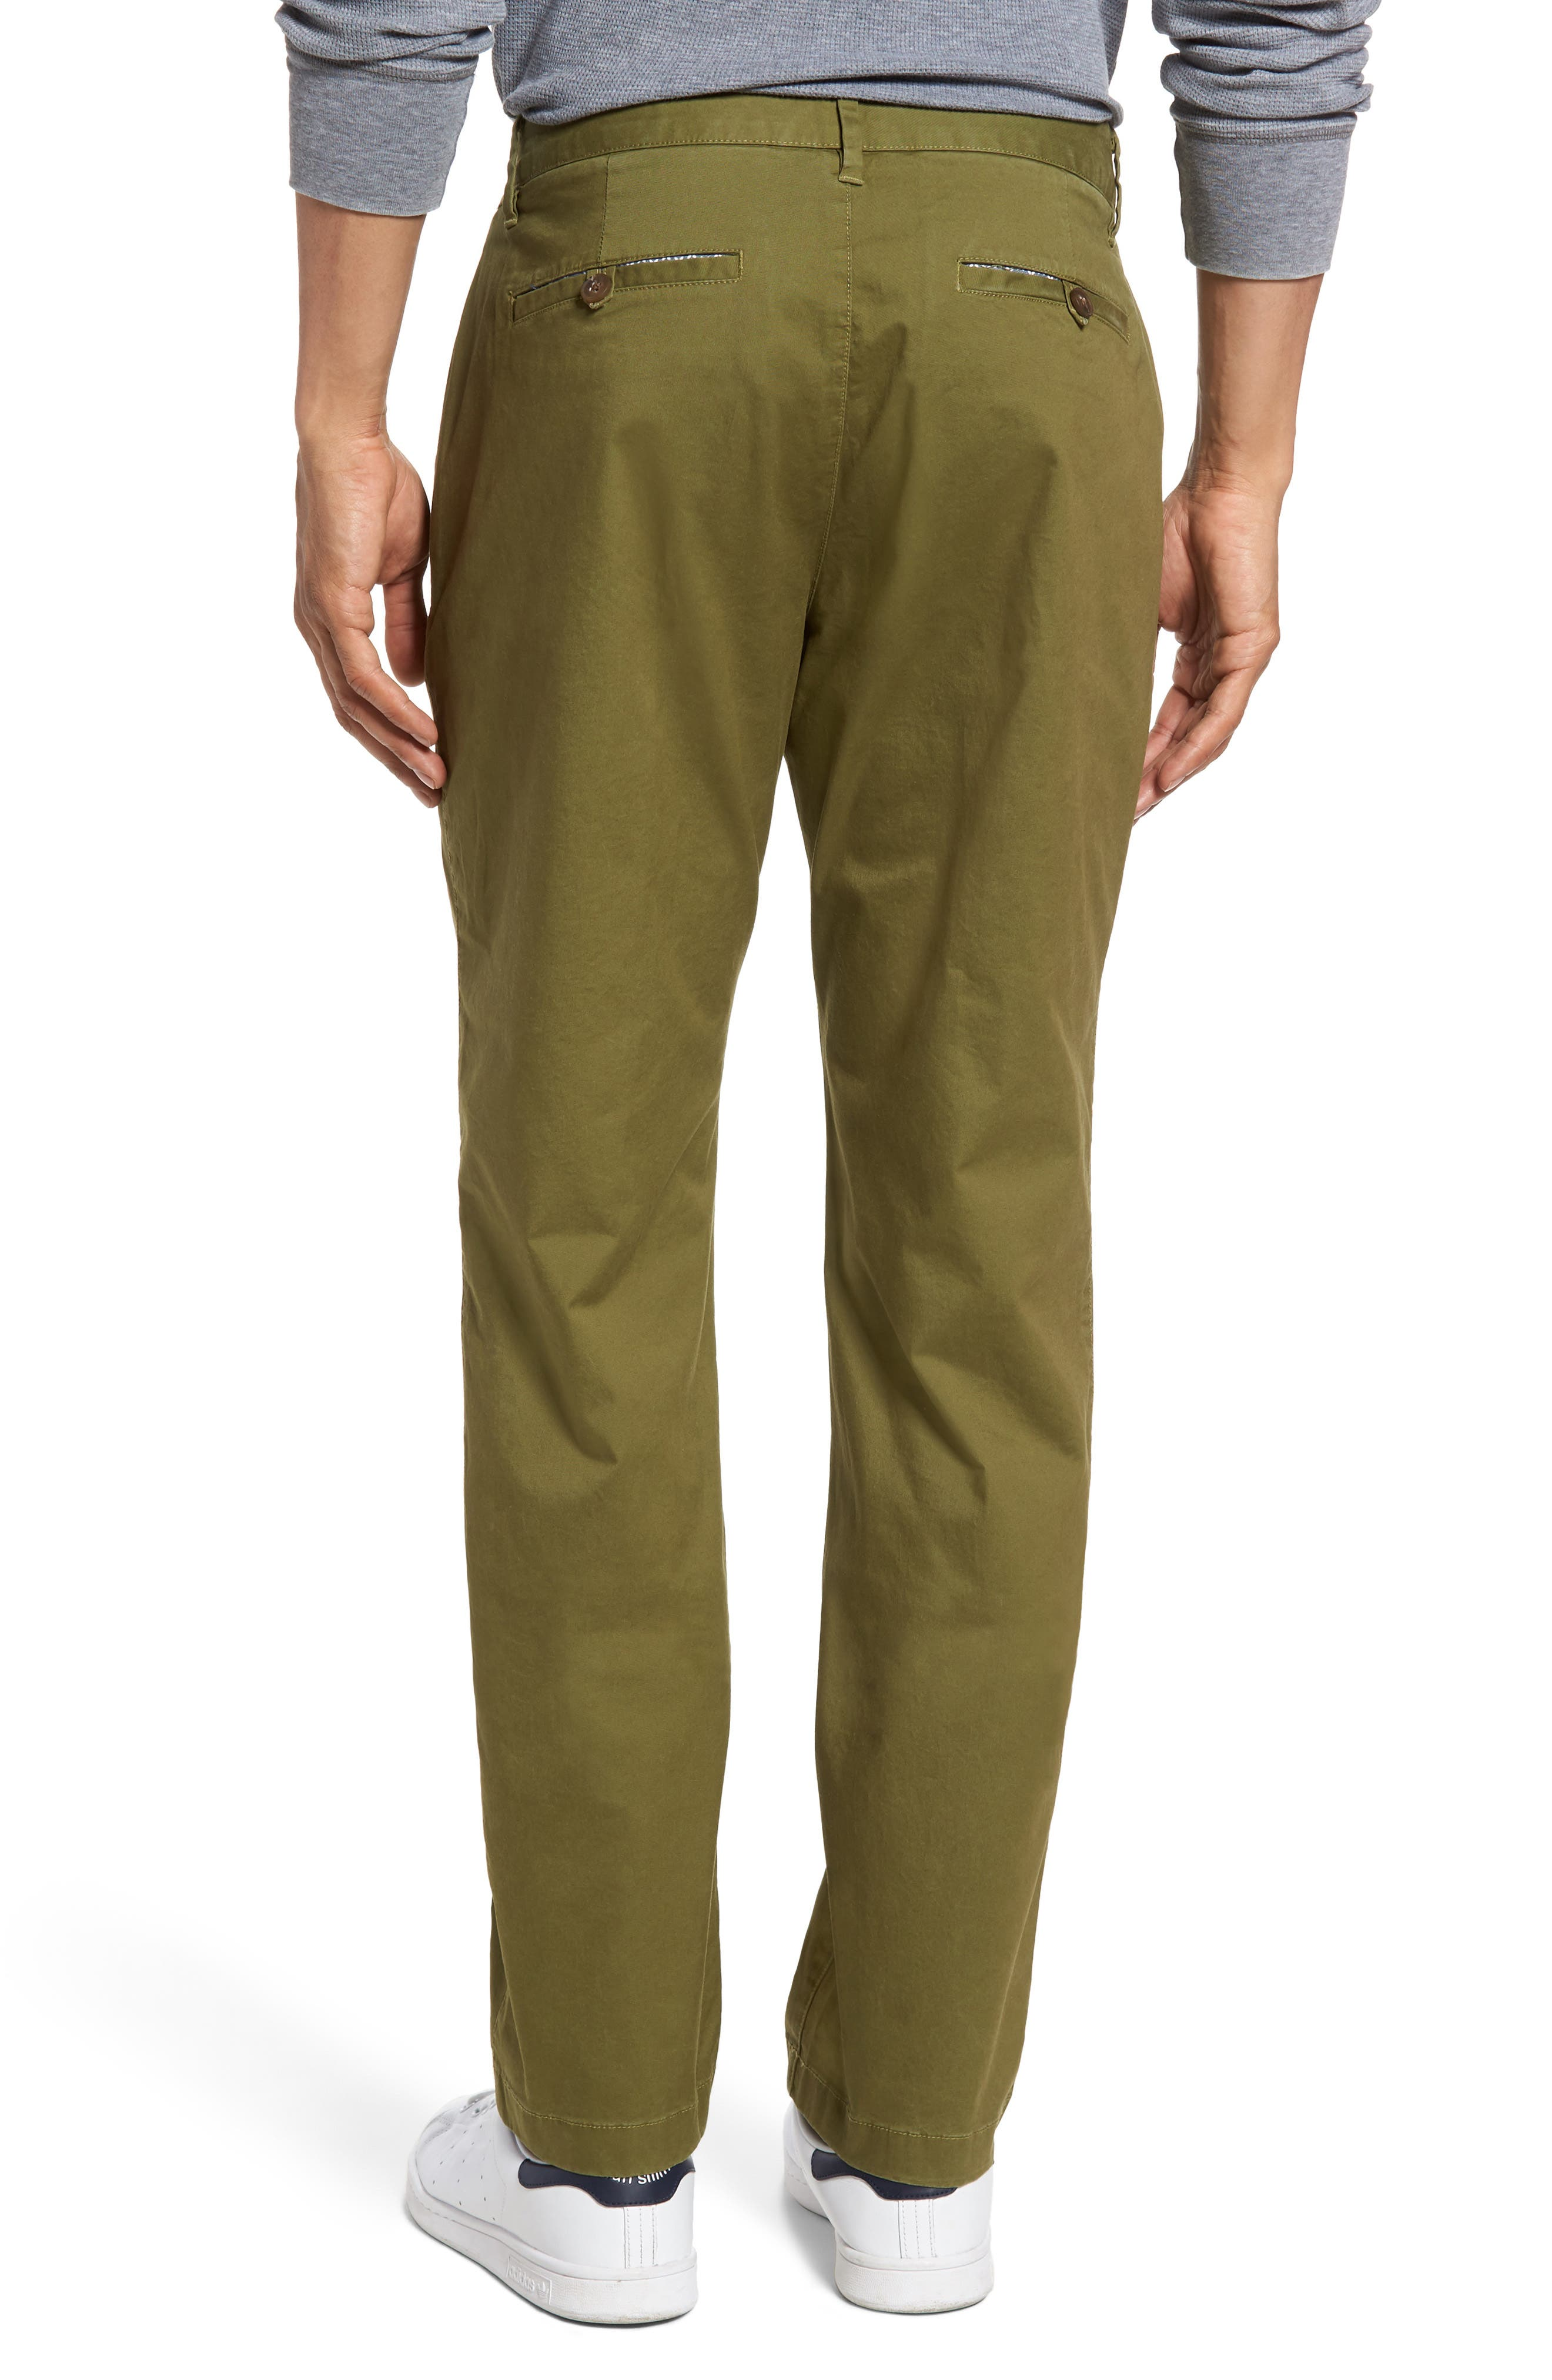 Big and Tall Pants | Nordstrom